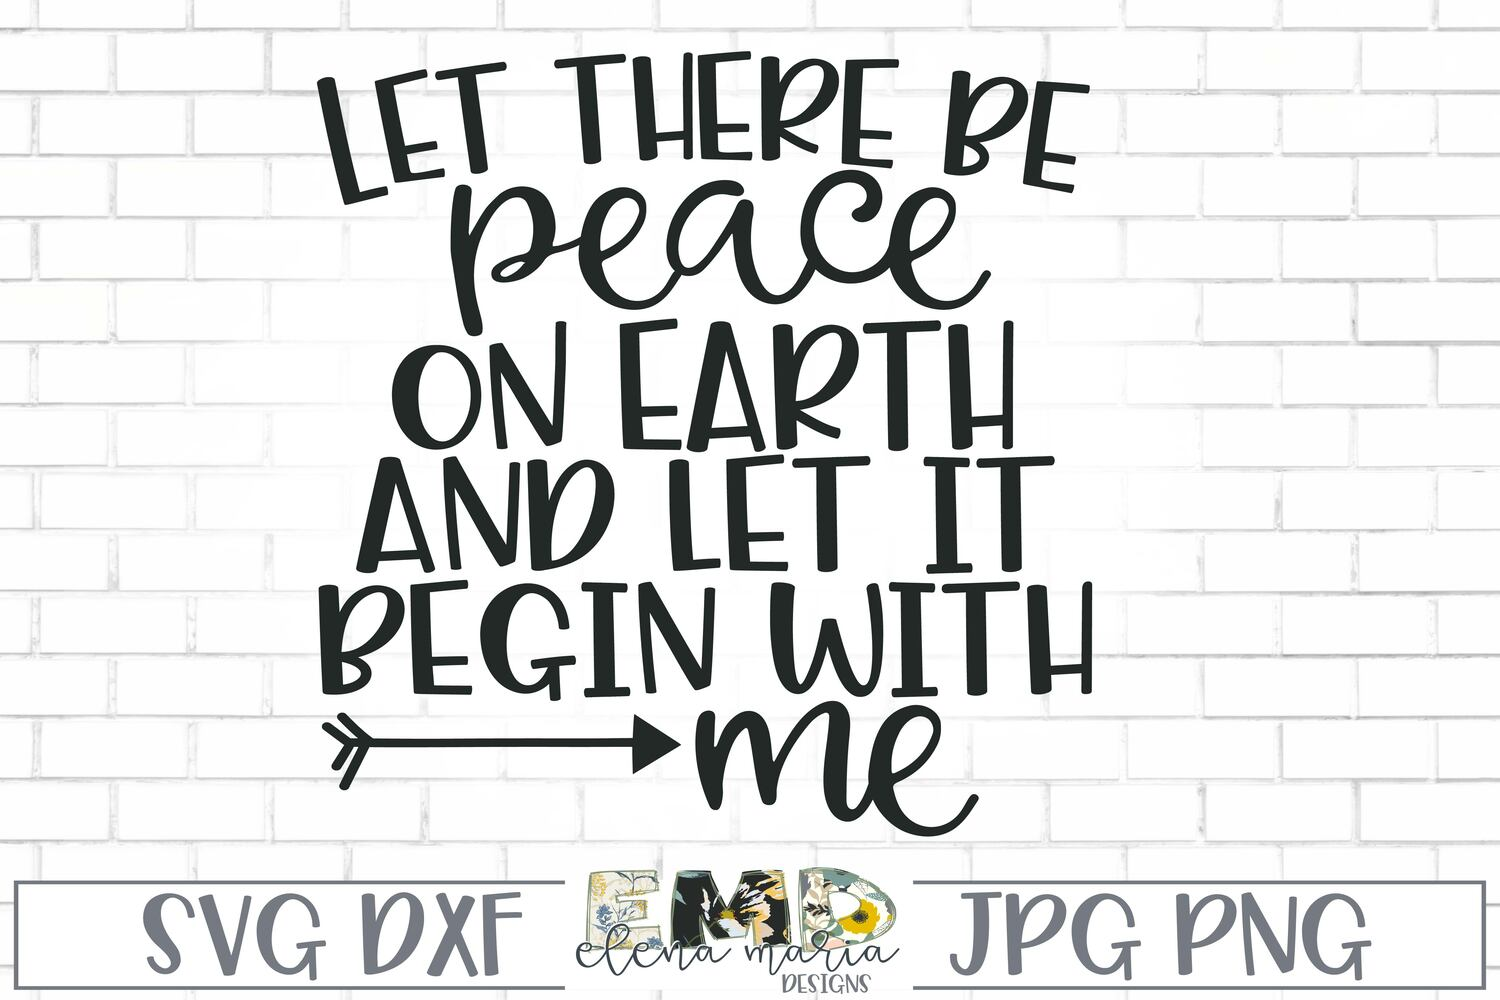 Christmas SVG | Let there be peace on earth Svg example image 2